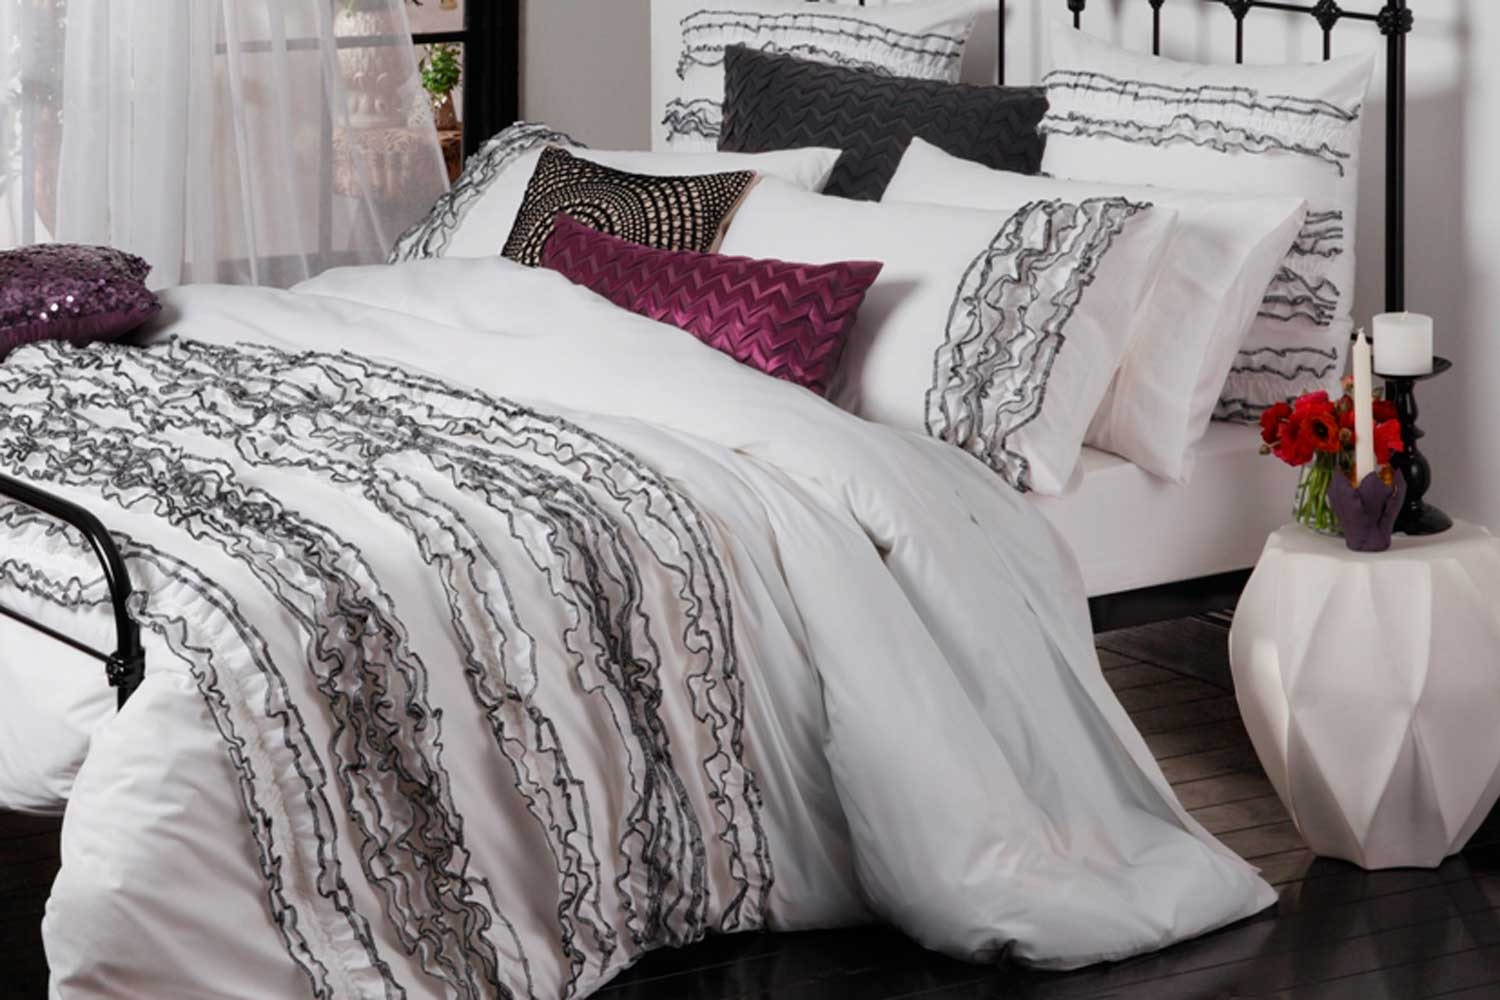 Lola White Bed Linen by Ultima